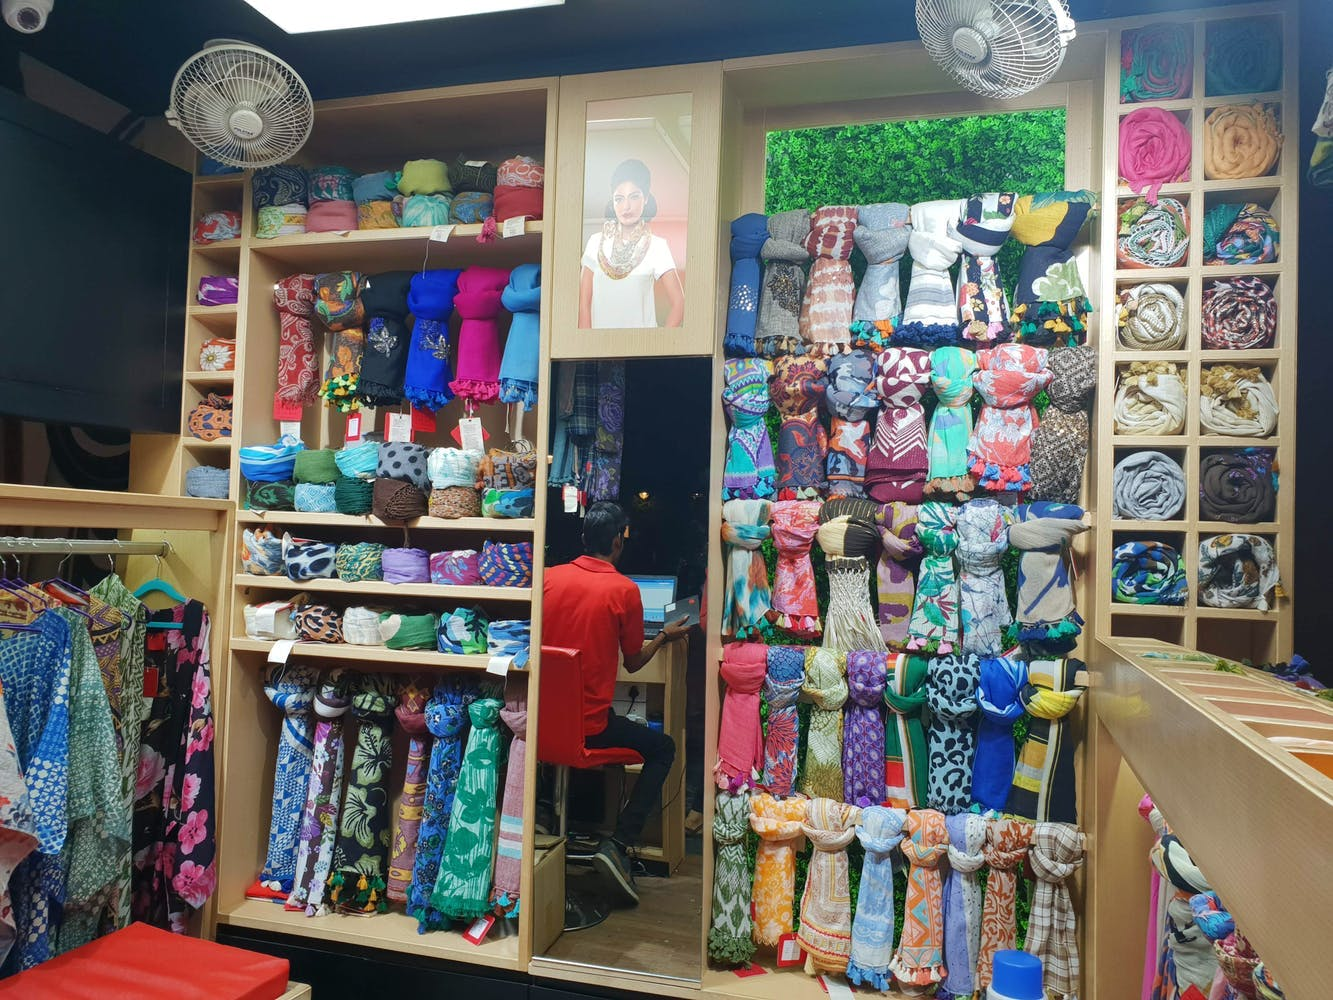 Retail,Room,Collection,Building,Textile,Shelf,Shelving,Bazaar,Interior design,Furniture